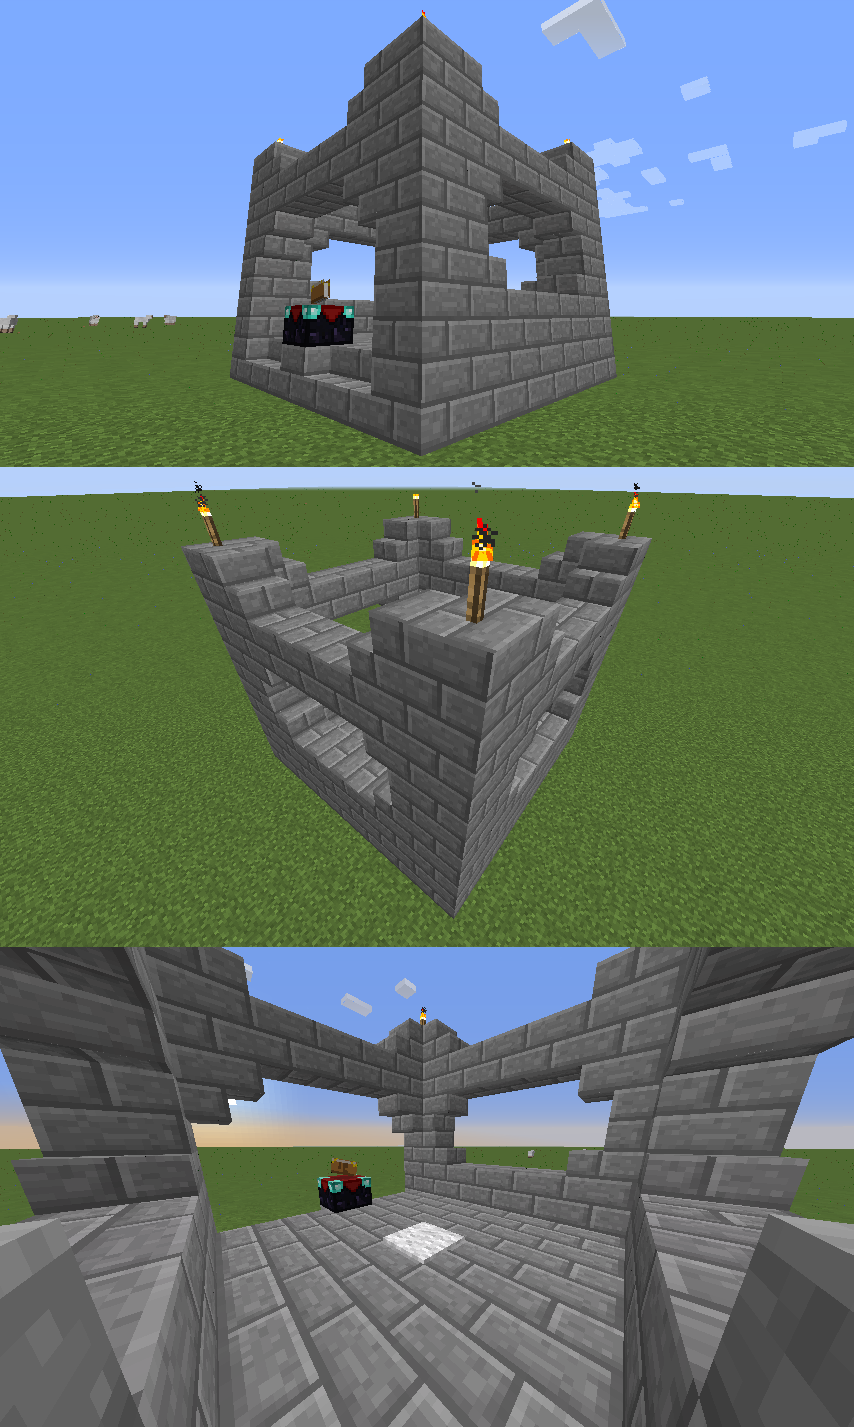 minecraft how to build an underground enchantment table